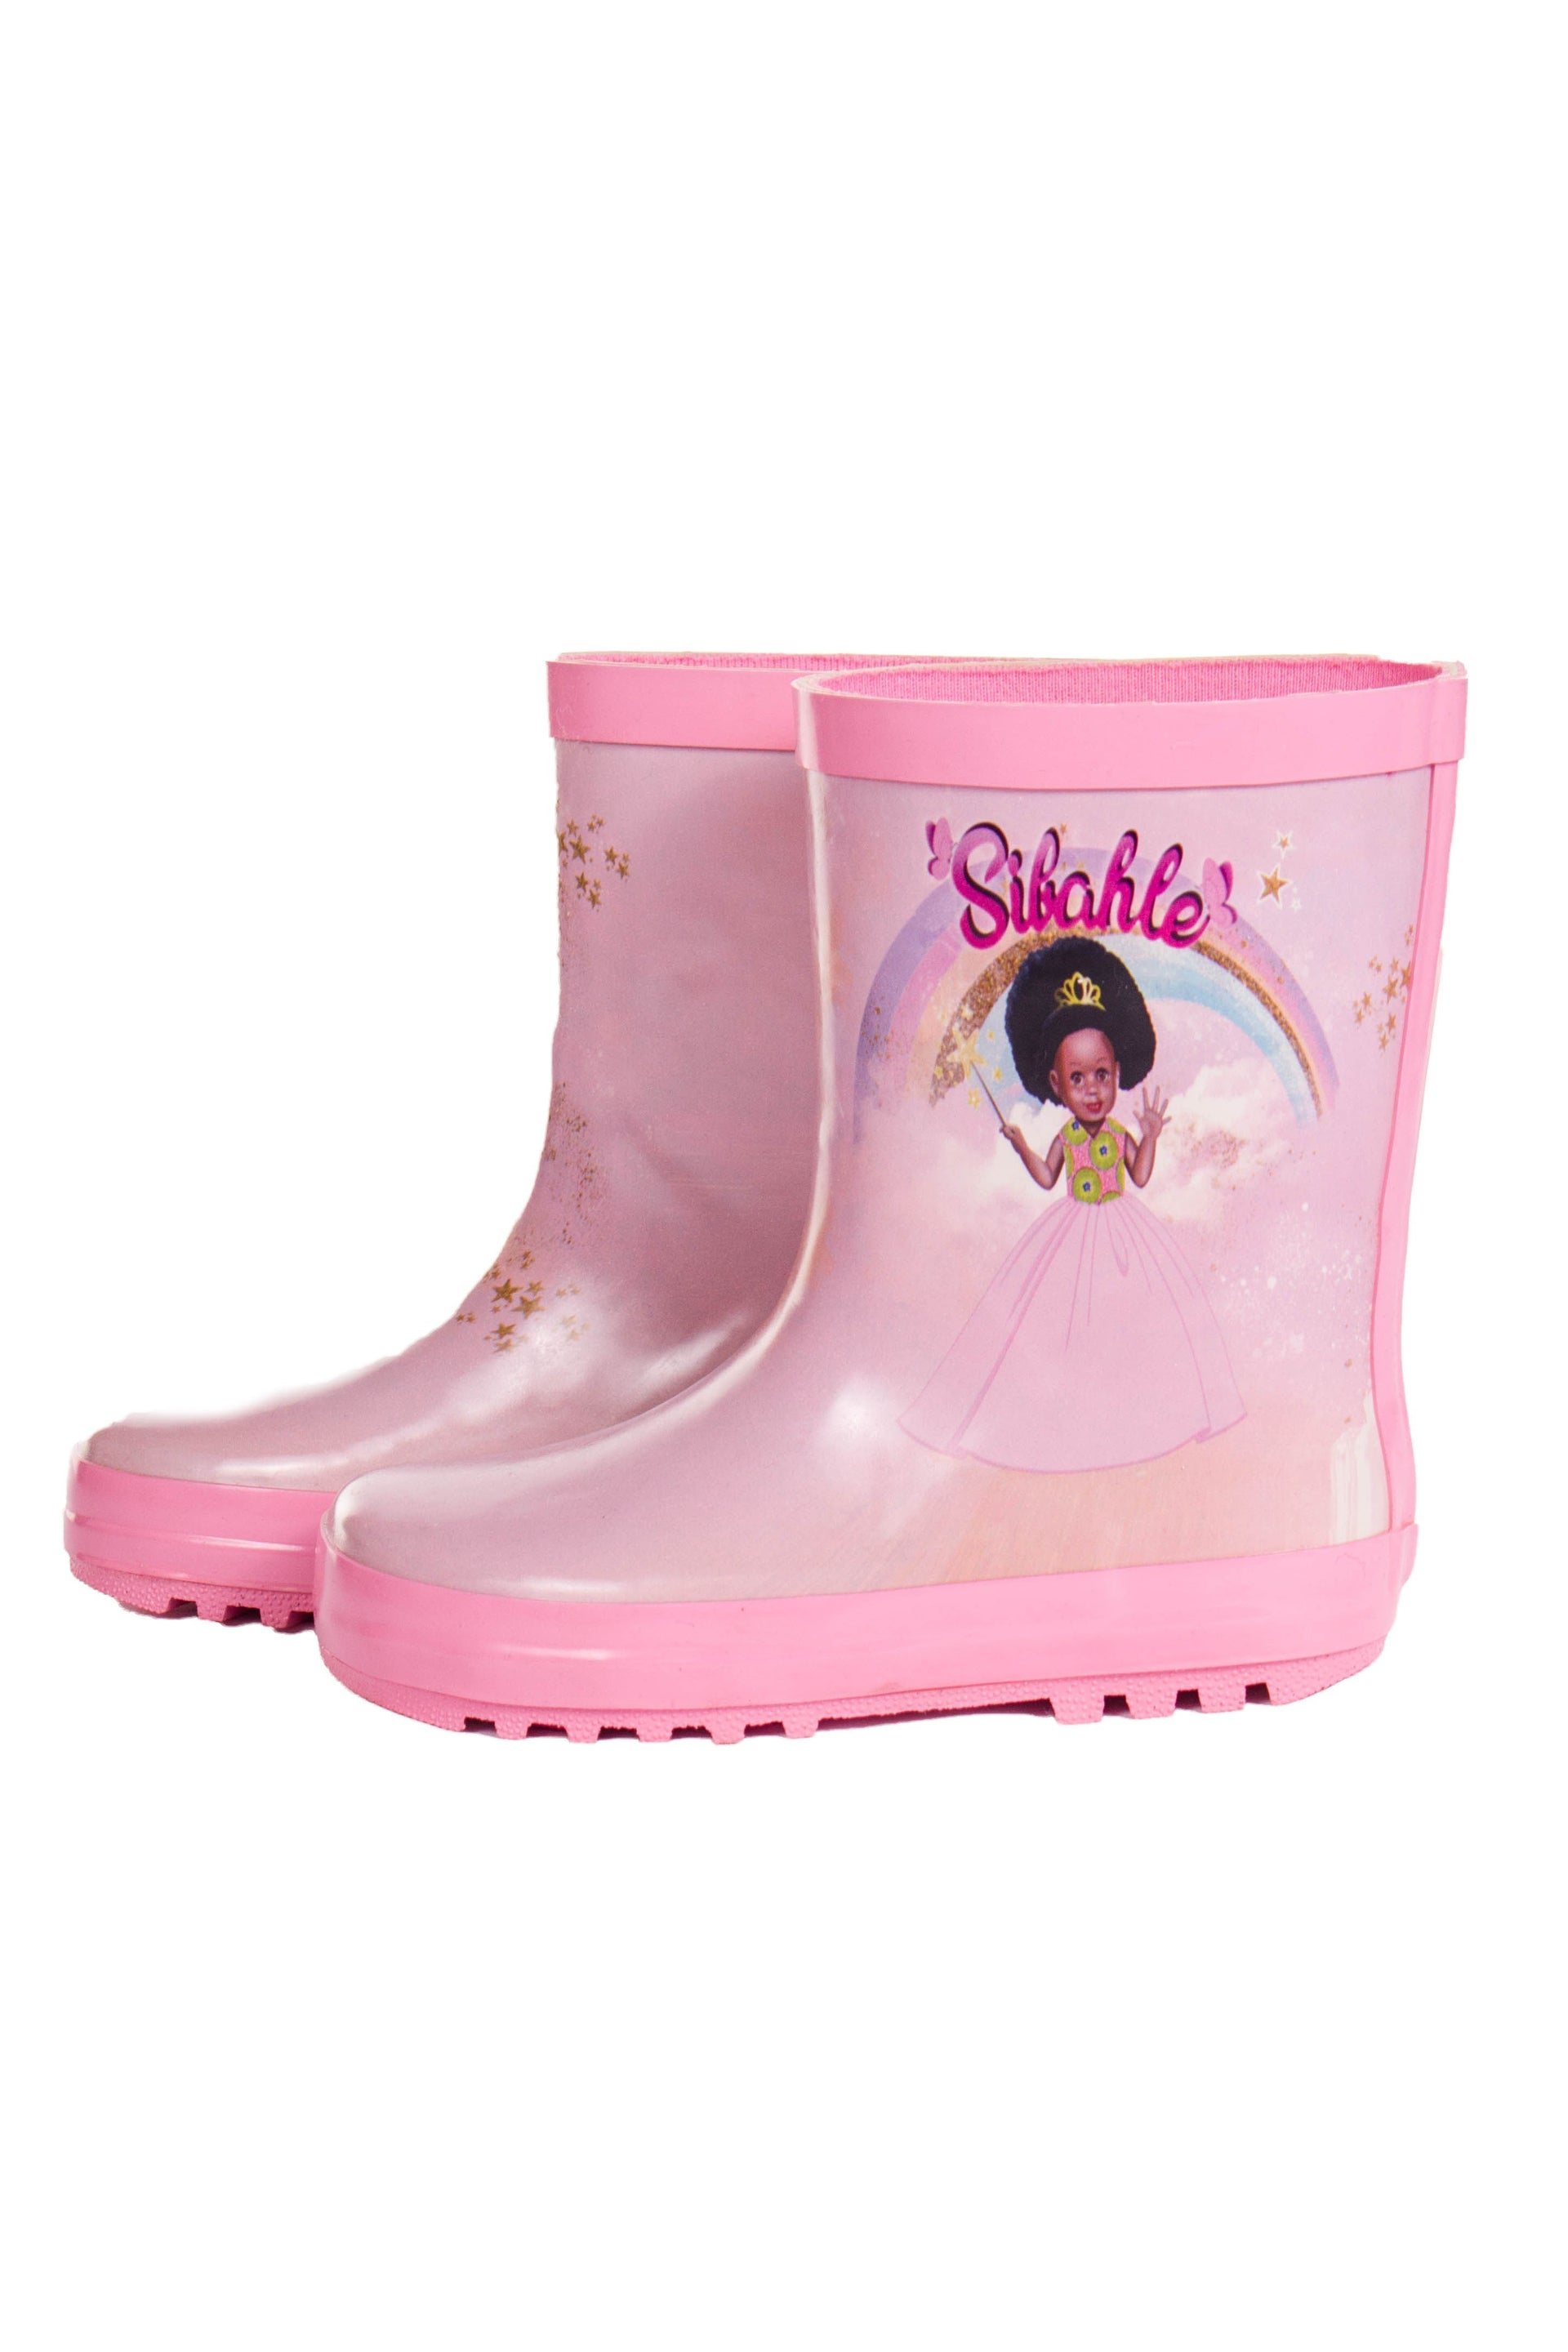 Pretty In Pink Wellingtons - Bounce Essential Hair